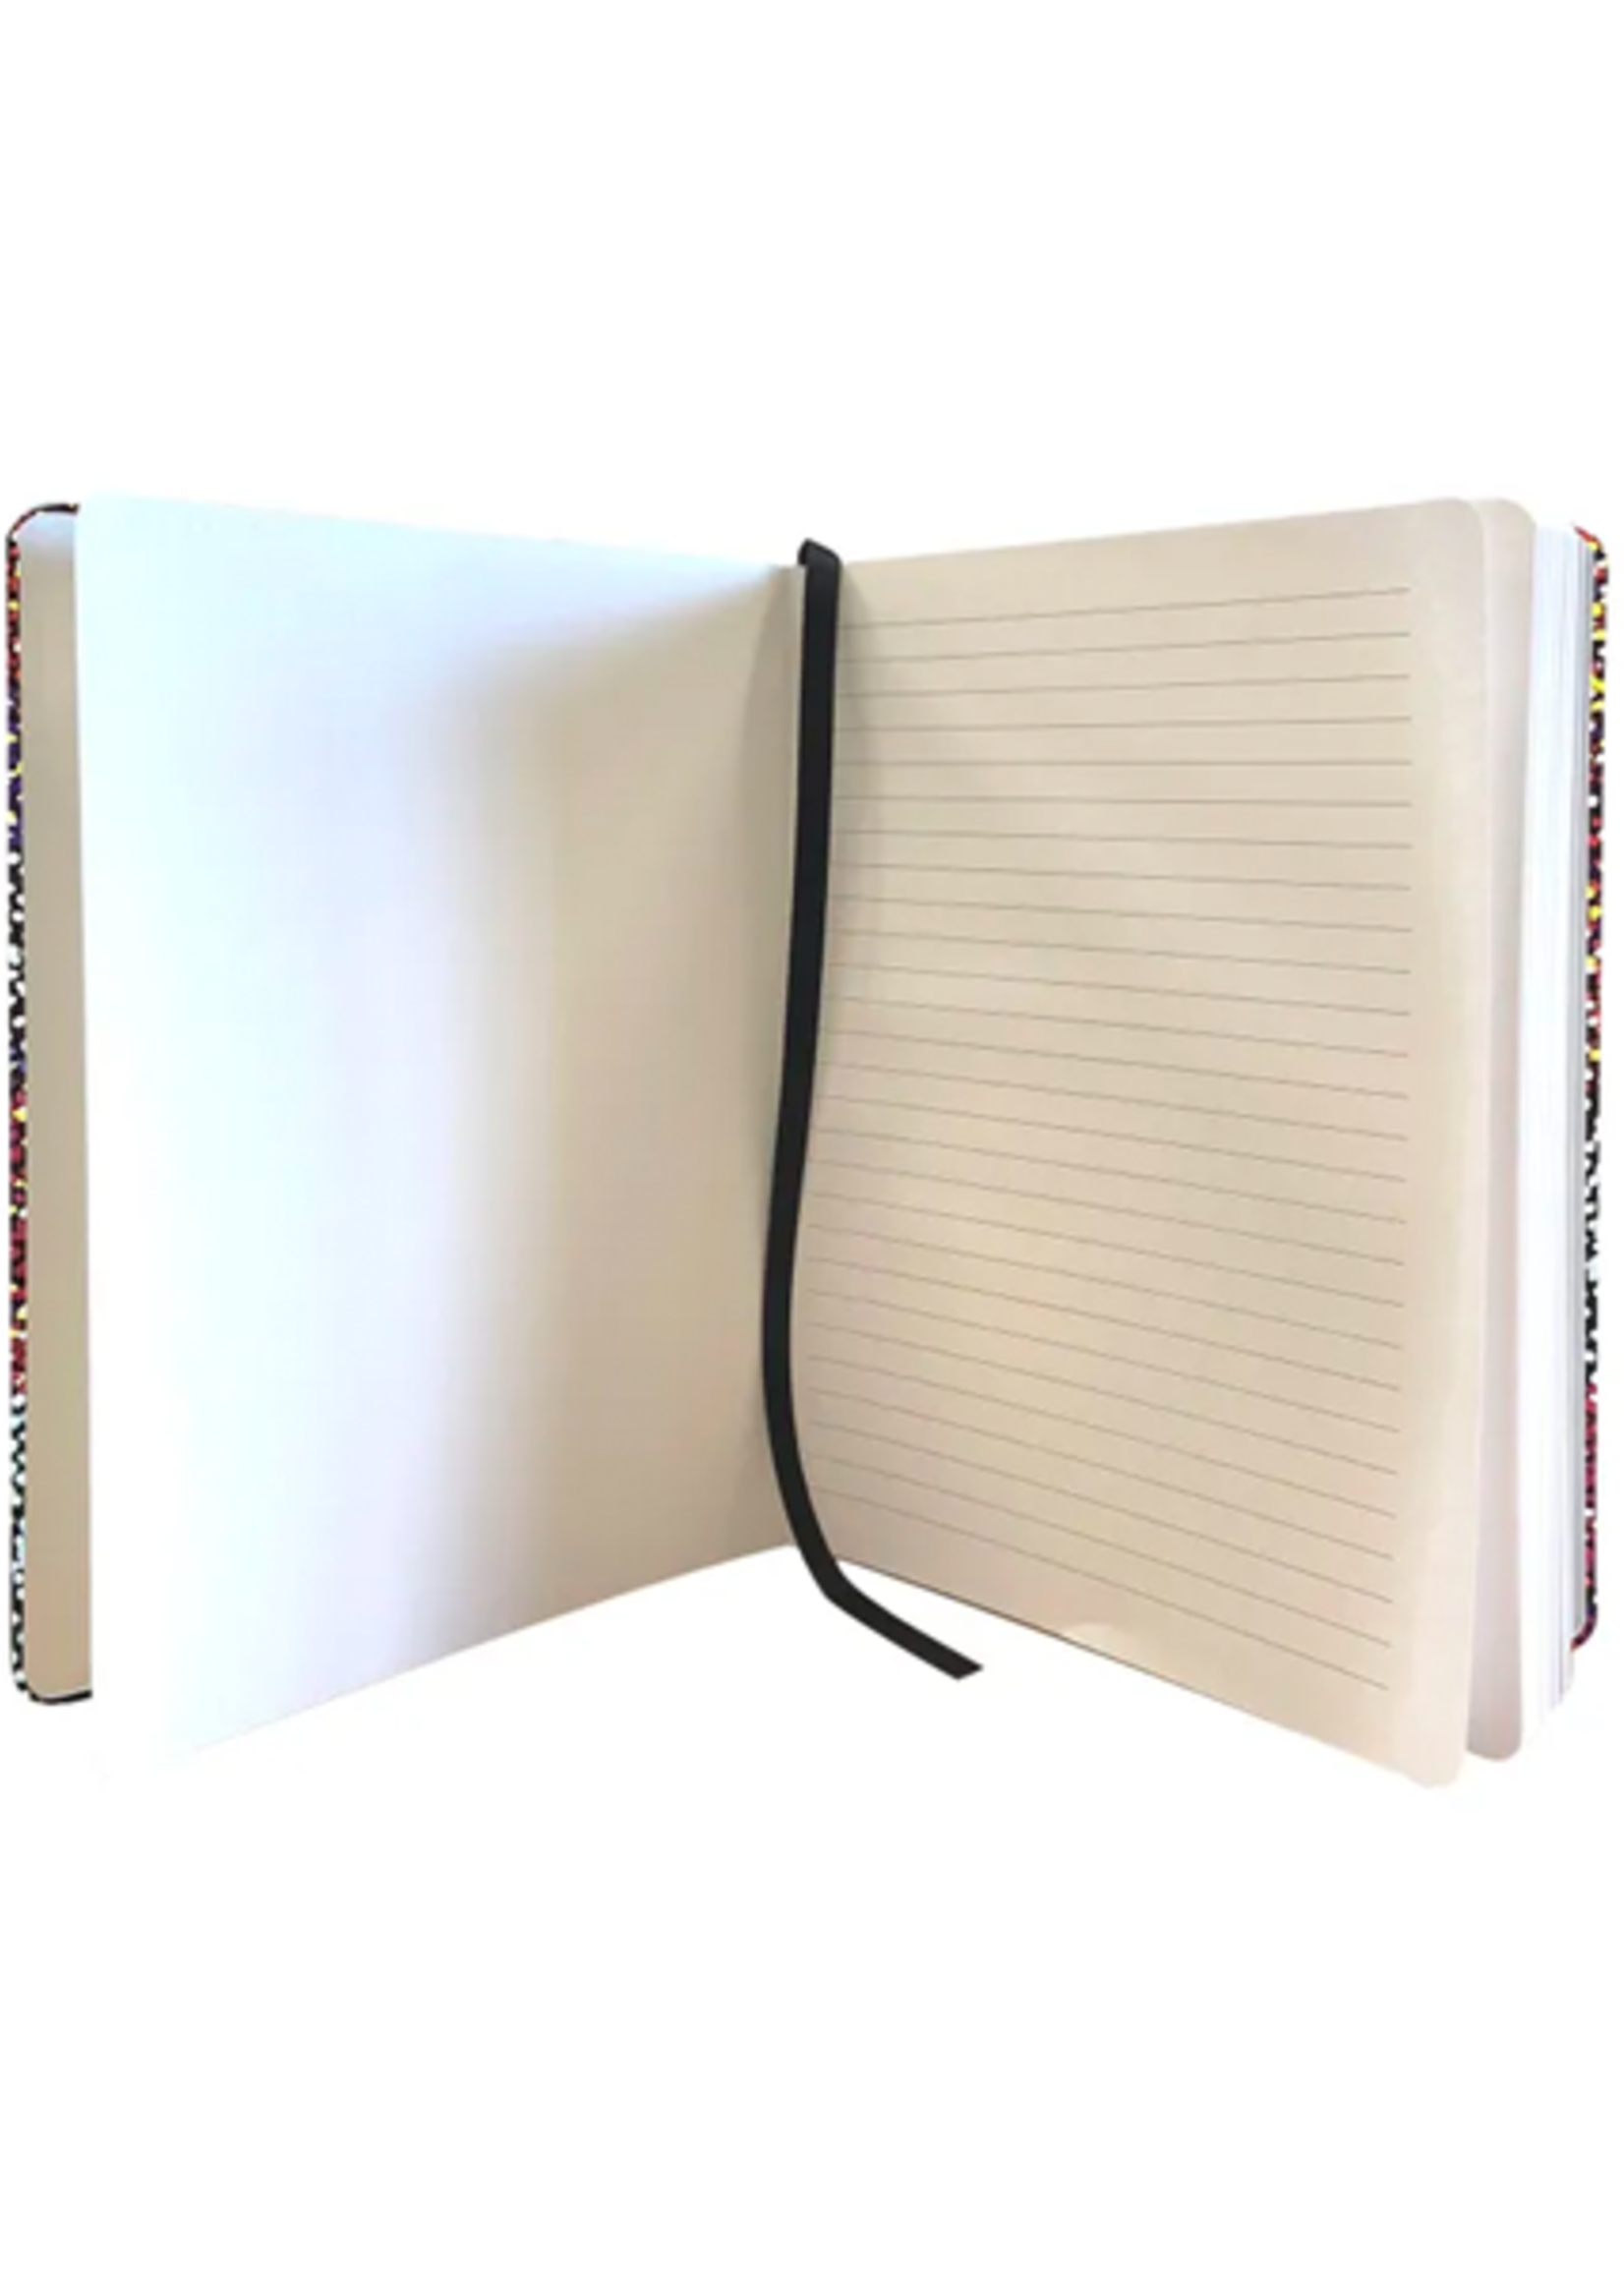 Utopia PU Leather Journal - Colleen Wallace 147